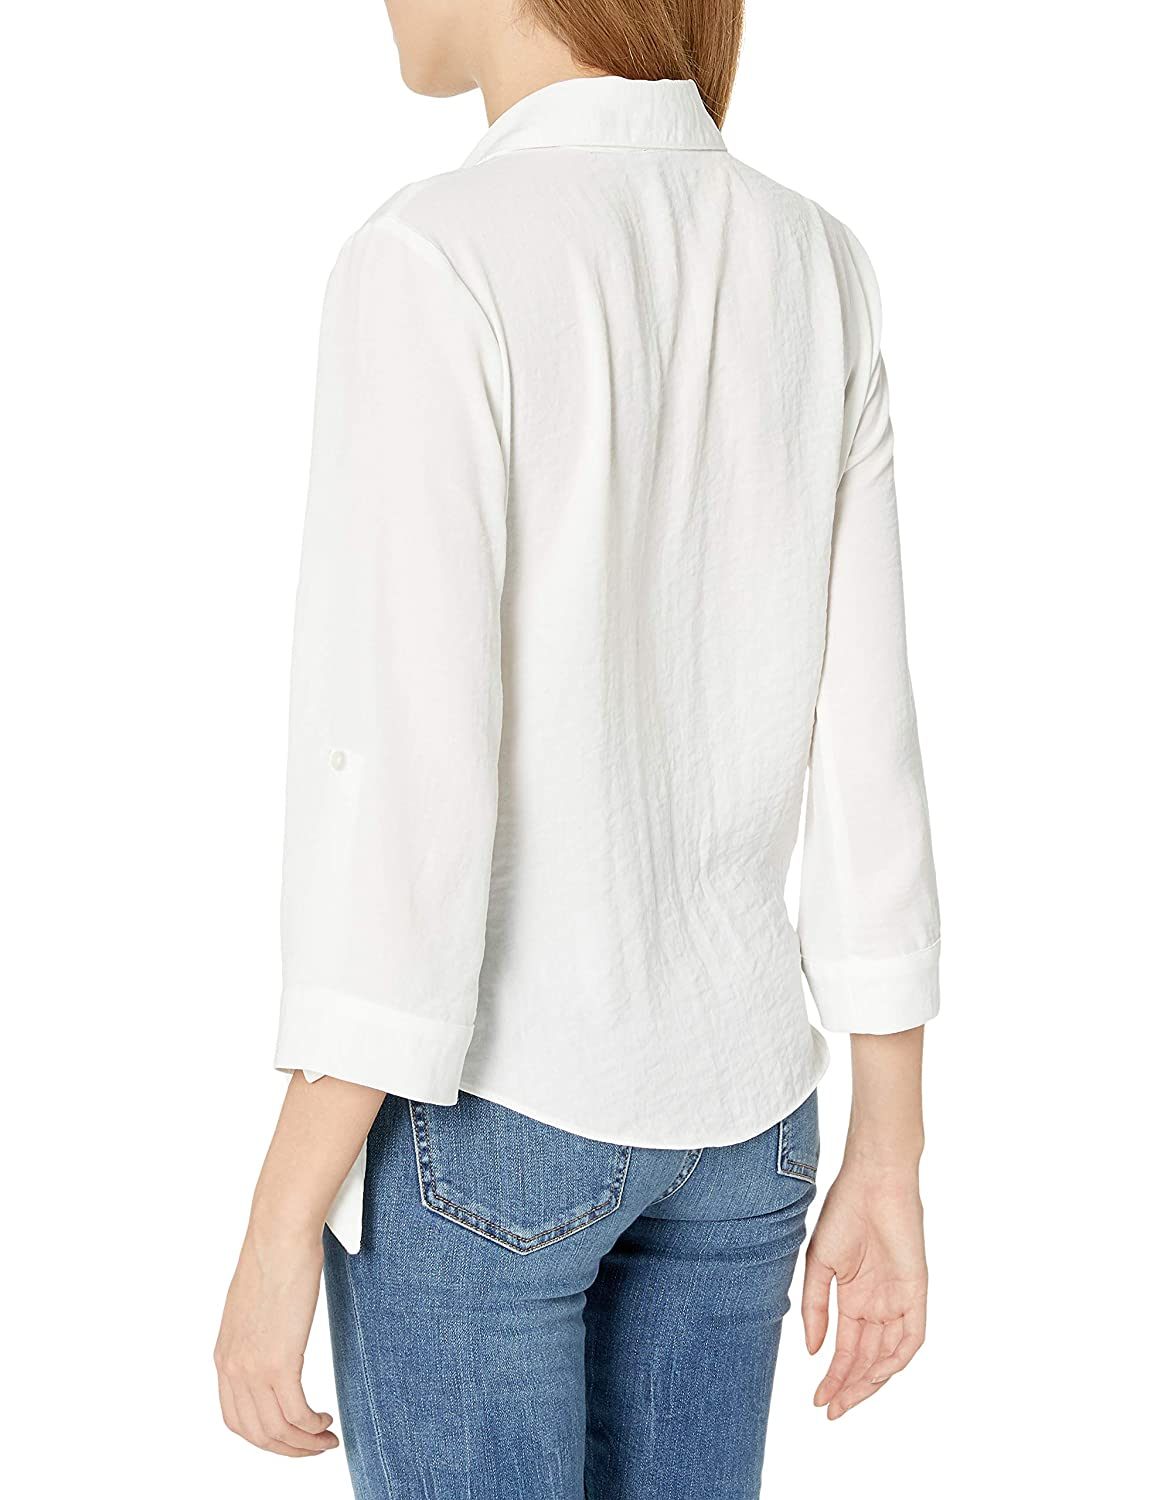 A Byer Womens Juniors Wrap Top with Side Tie